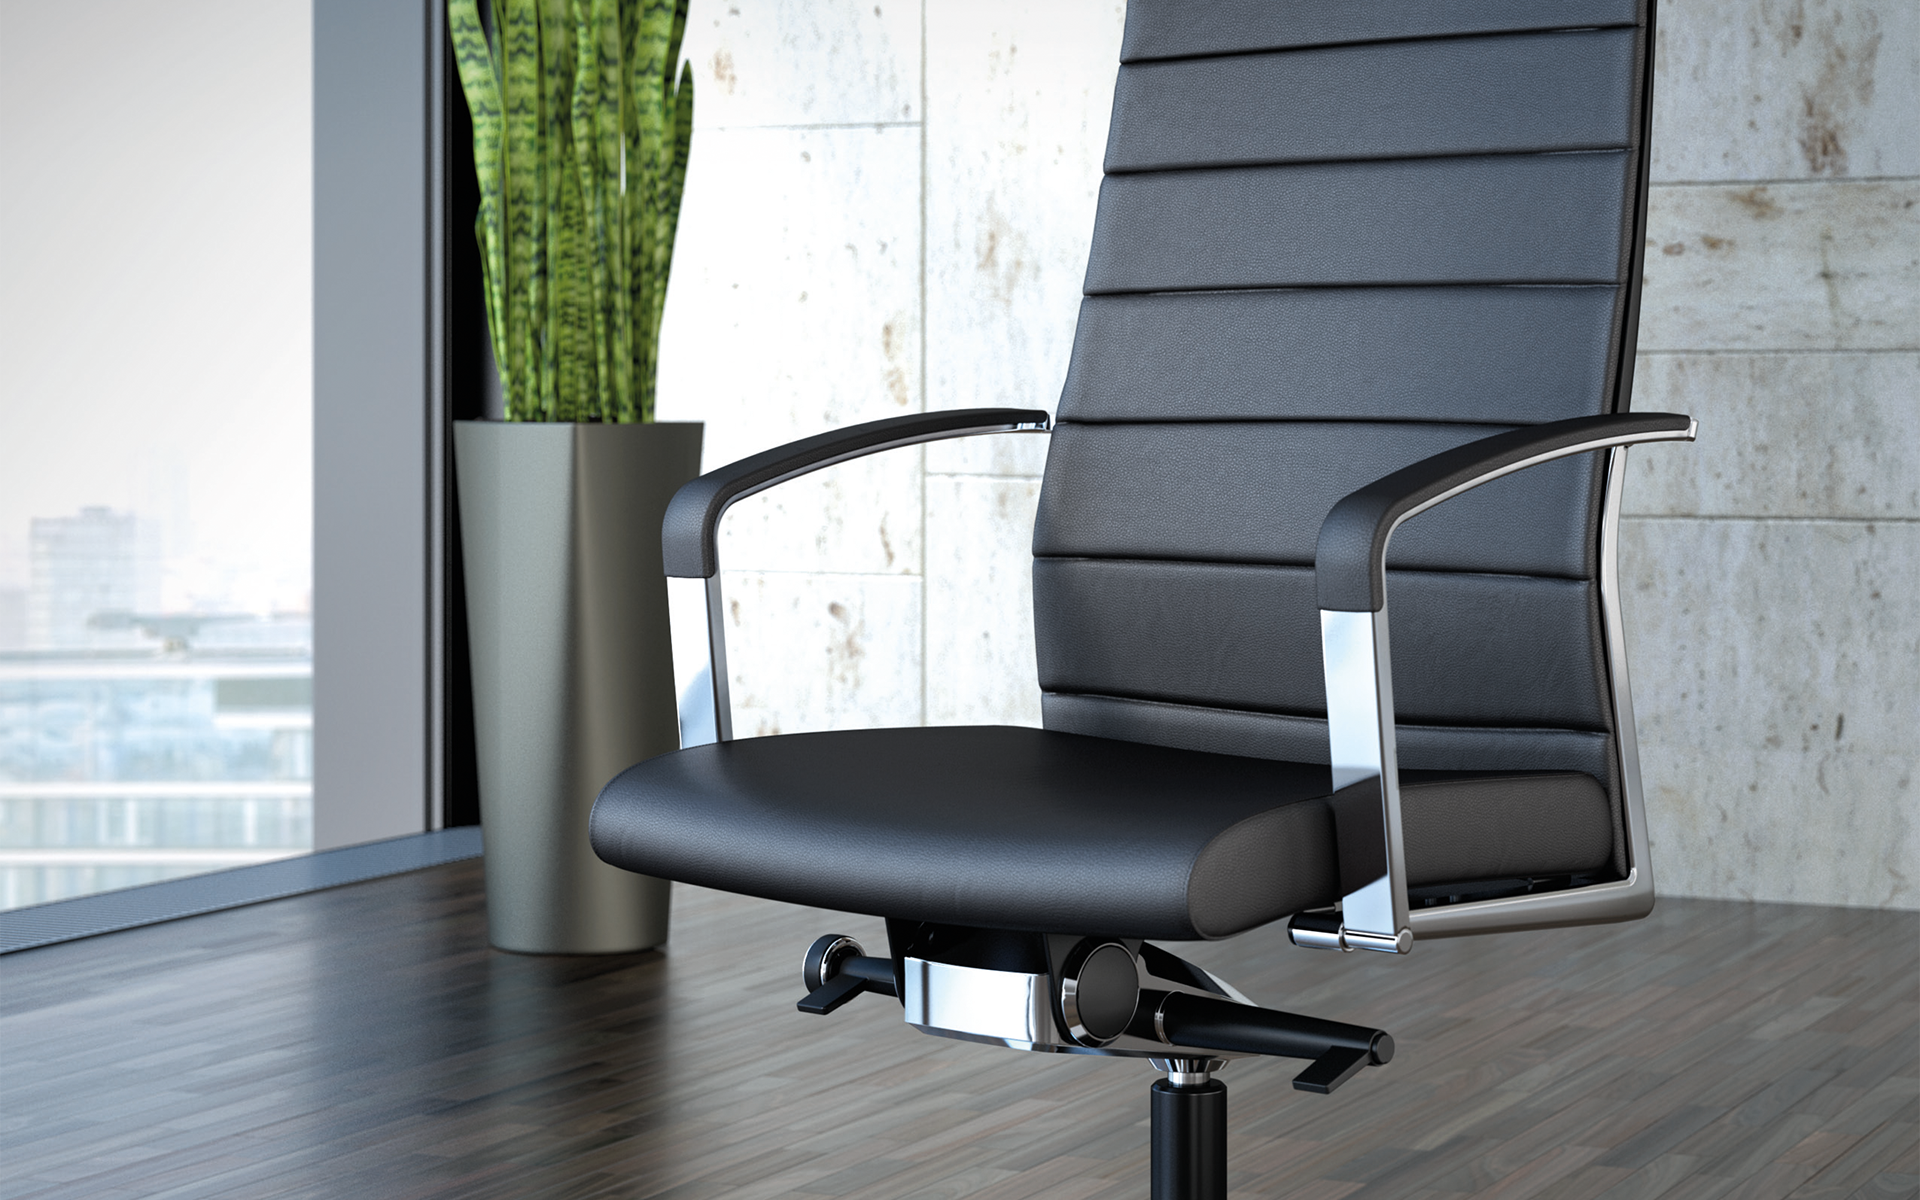 Close-up of black K+N Agenda conference chairs by ITO Design with mesh backrests